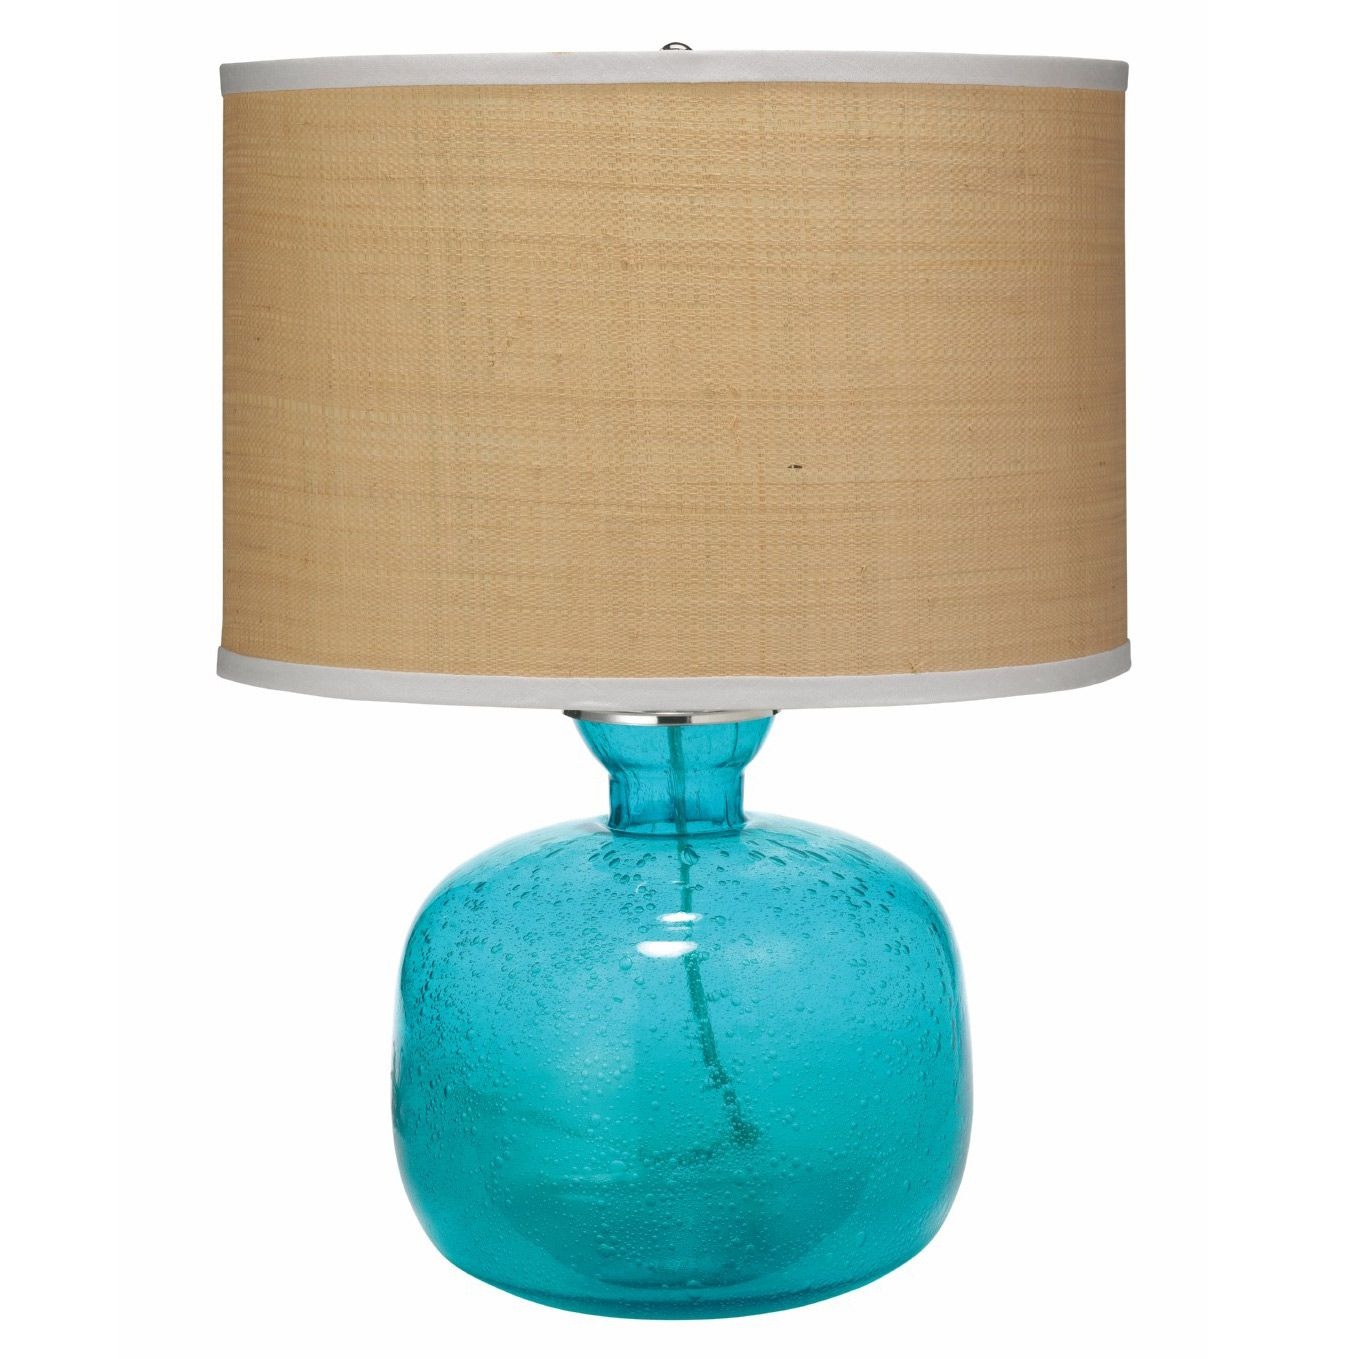 Blue glass table lamps  The aqua Jug table lamp base by Jamie Young lights up in colorful